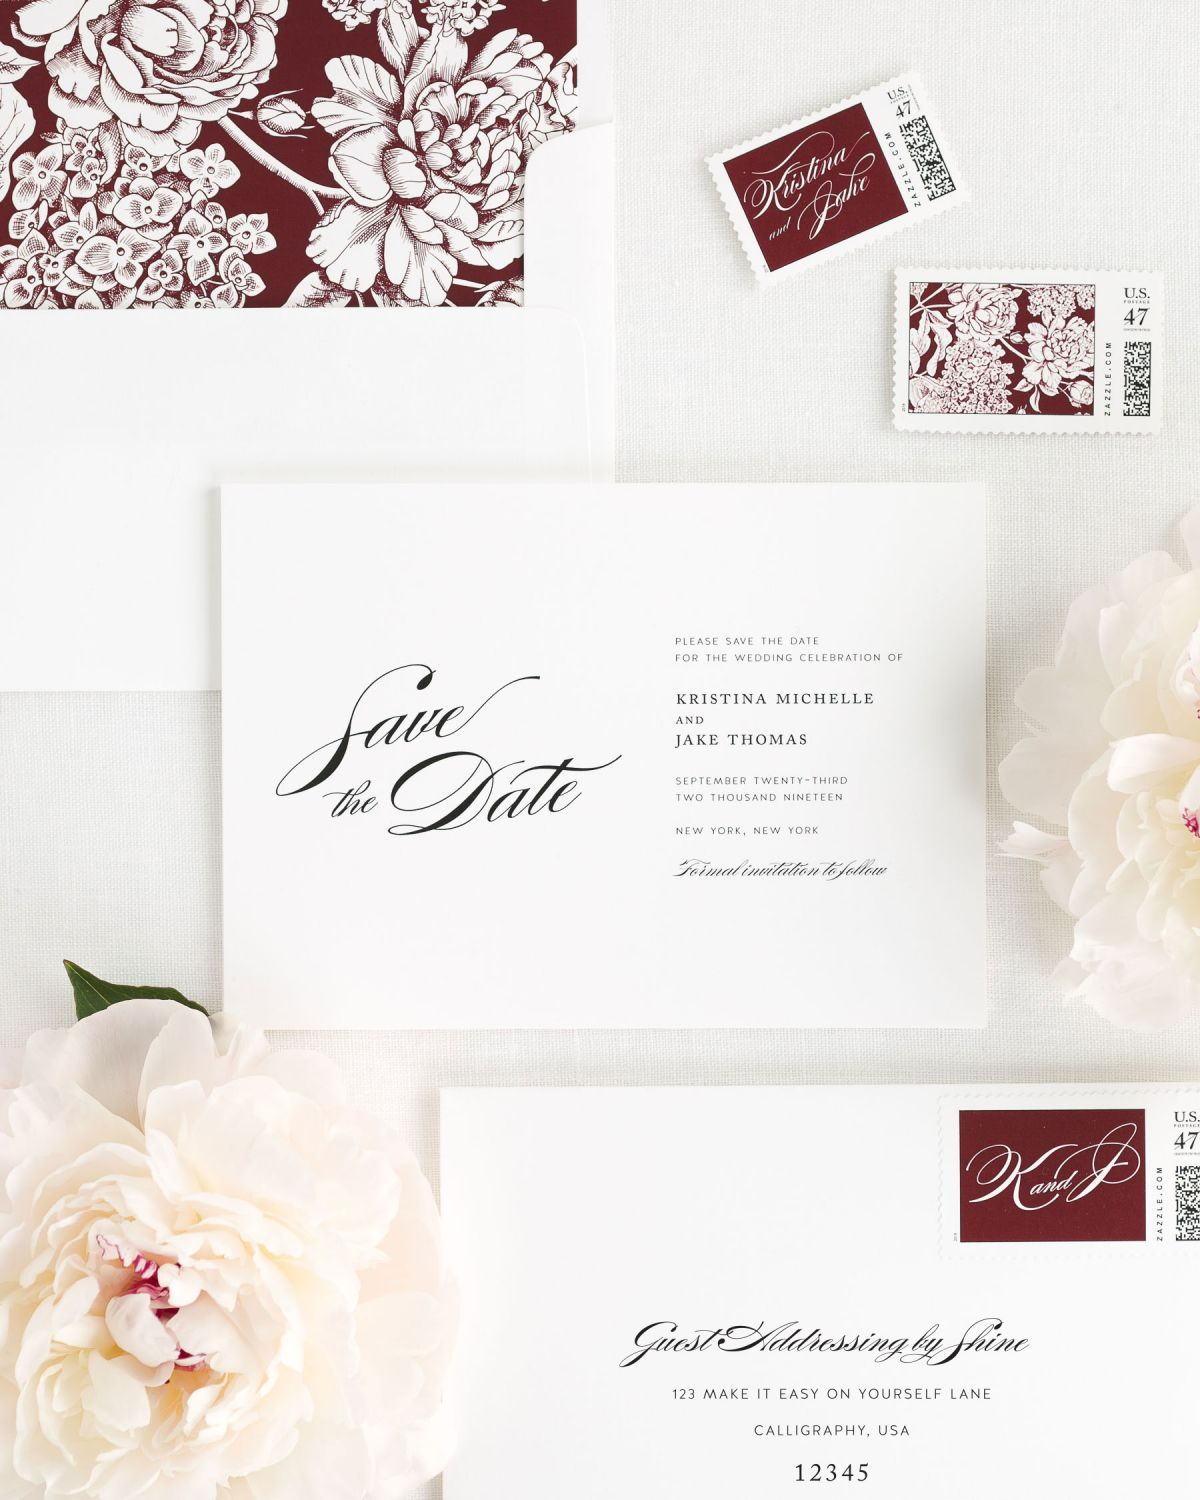 Save the Date with Cabernet Envelope Liner and Personalized Postage